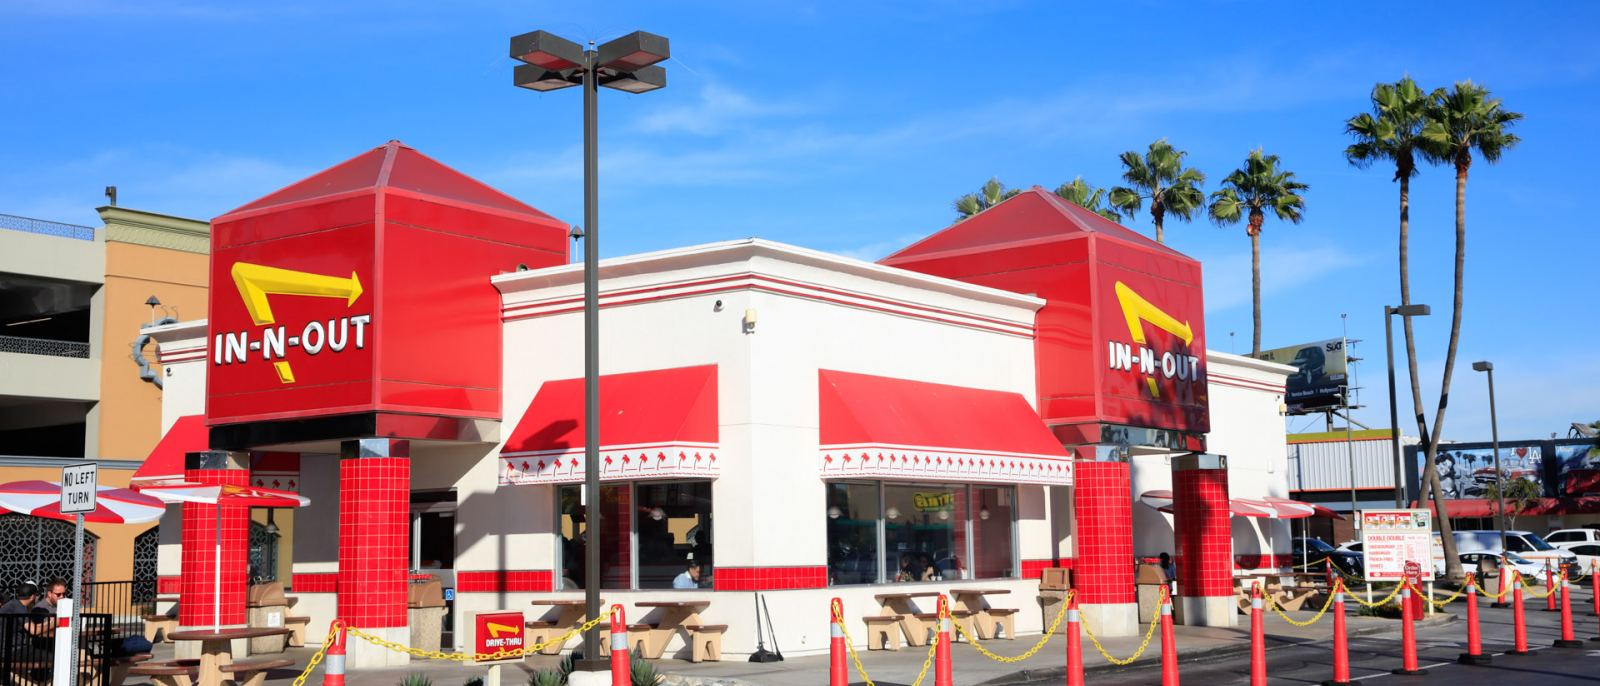 in-n-out-LAX-exterior